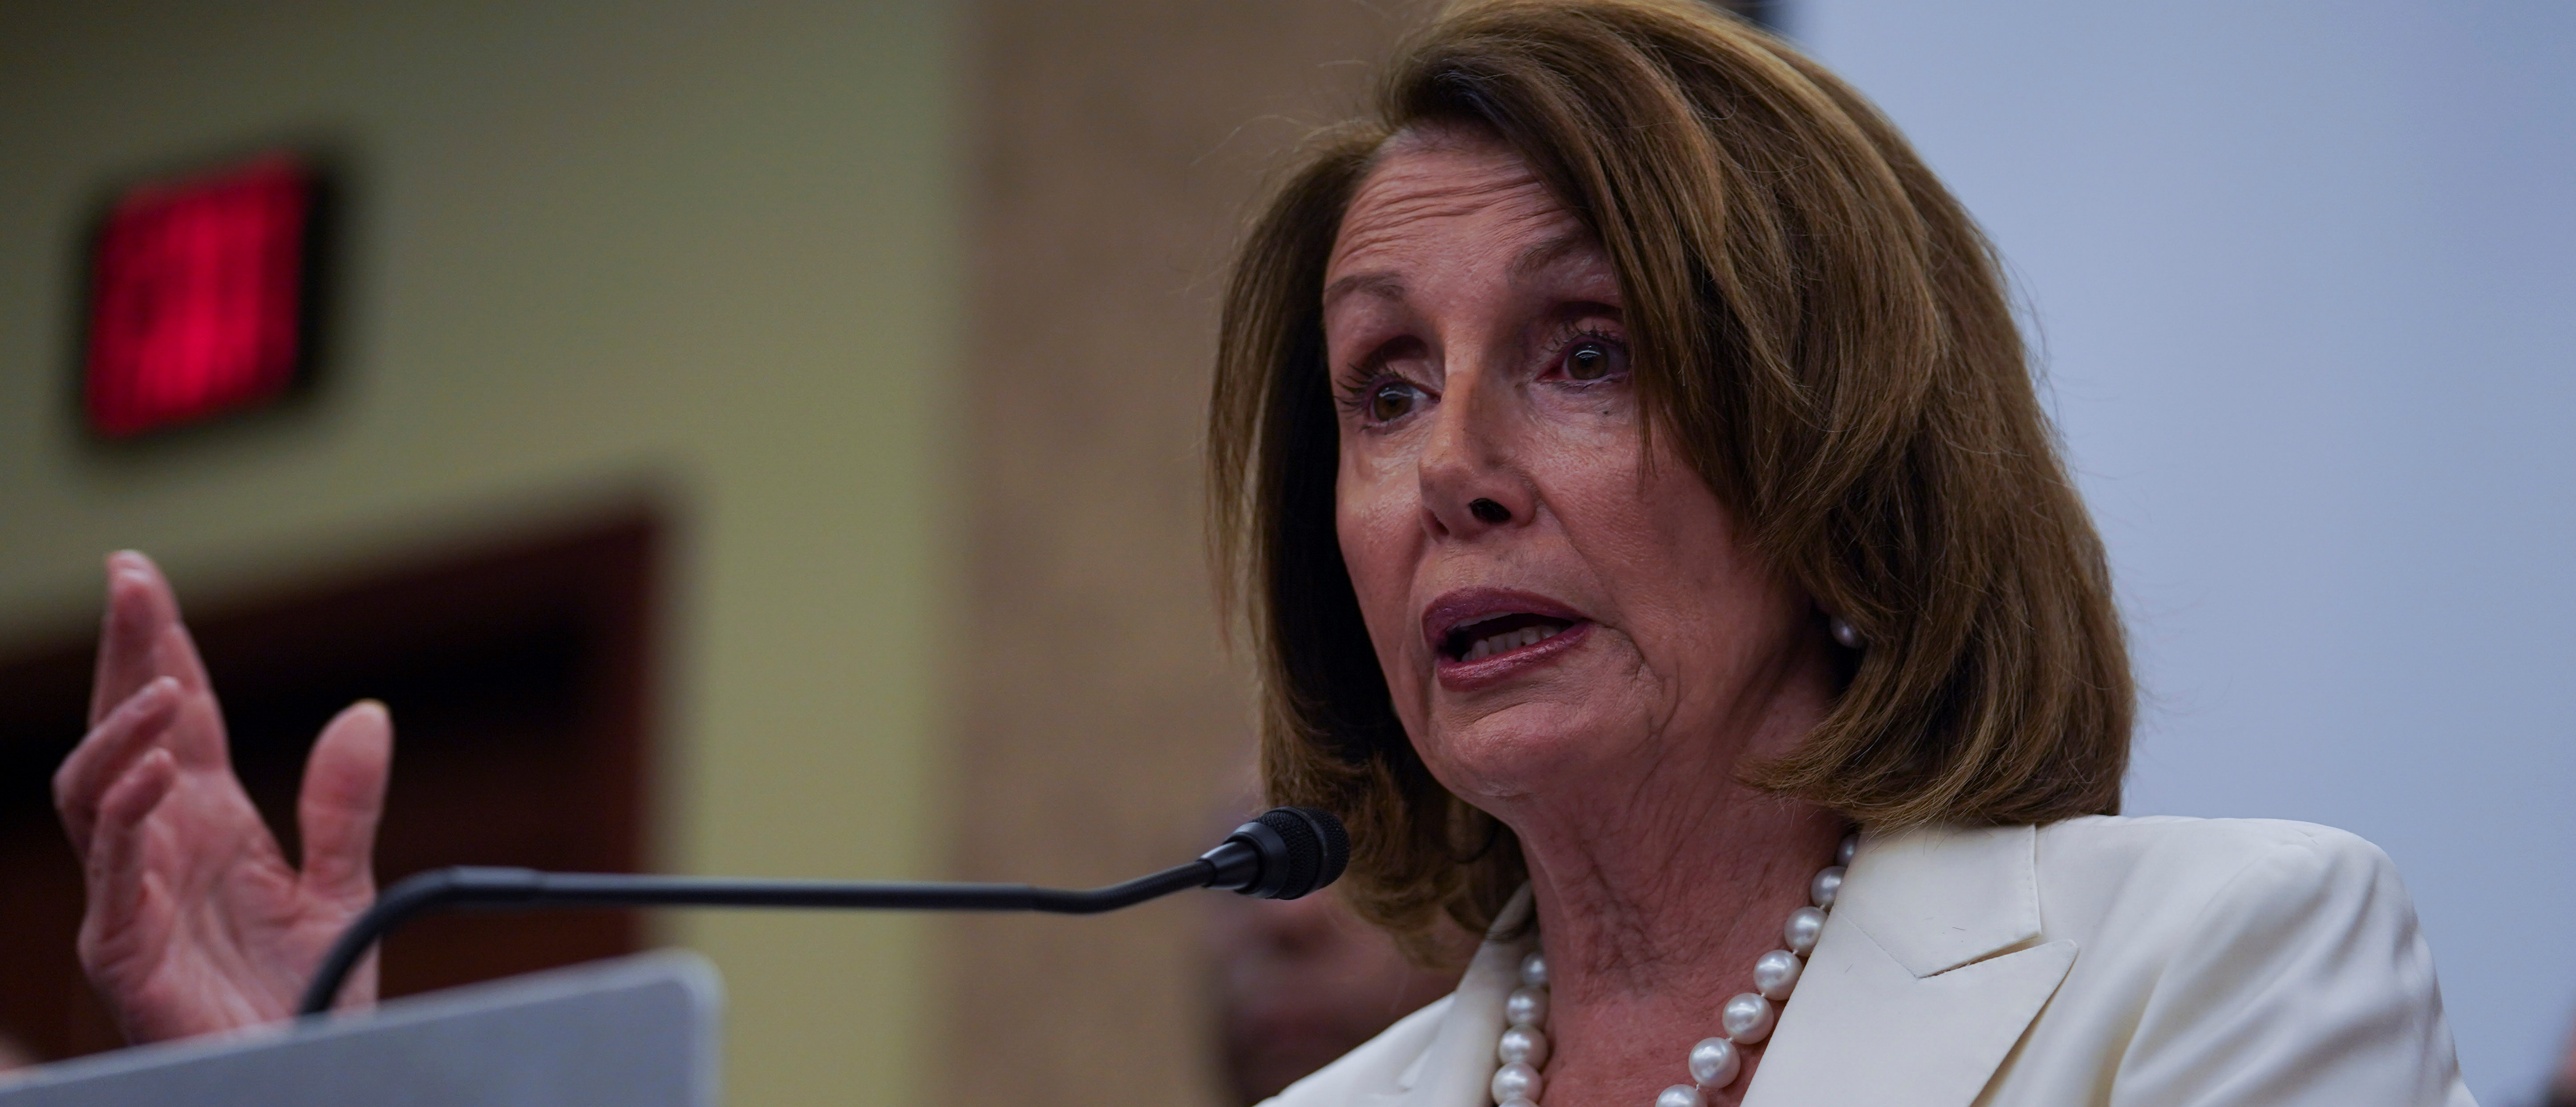 House Minority Leader Nancy Pelosi (D-CA) speaks during a press conference on the Trump Administration's tax cuts at the U.S. Capitol Visitors Center in Washington, on June 22, 2018. REUTERS/Toya Sarno Jordan